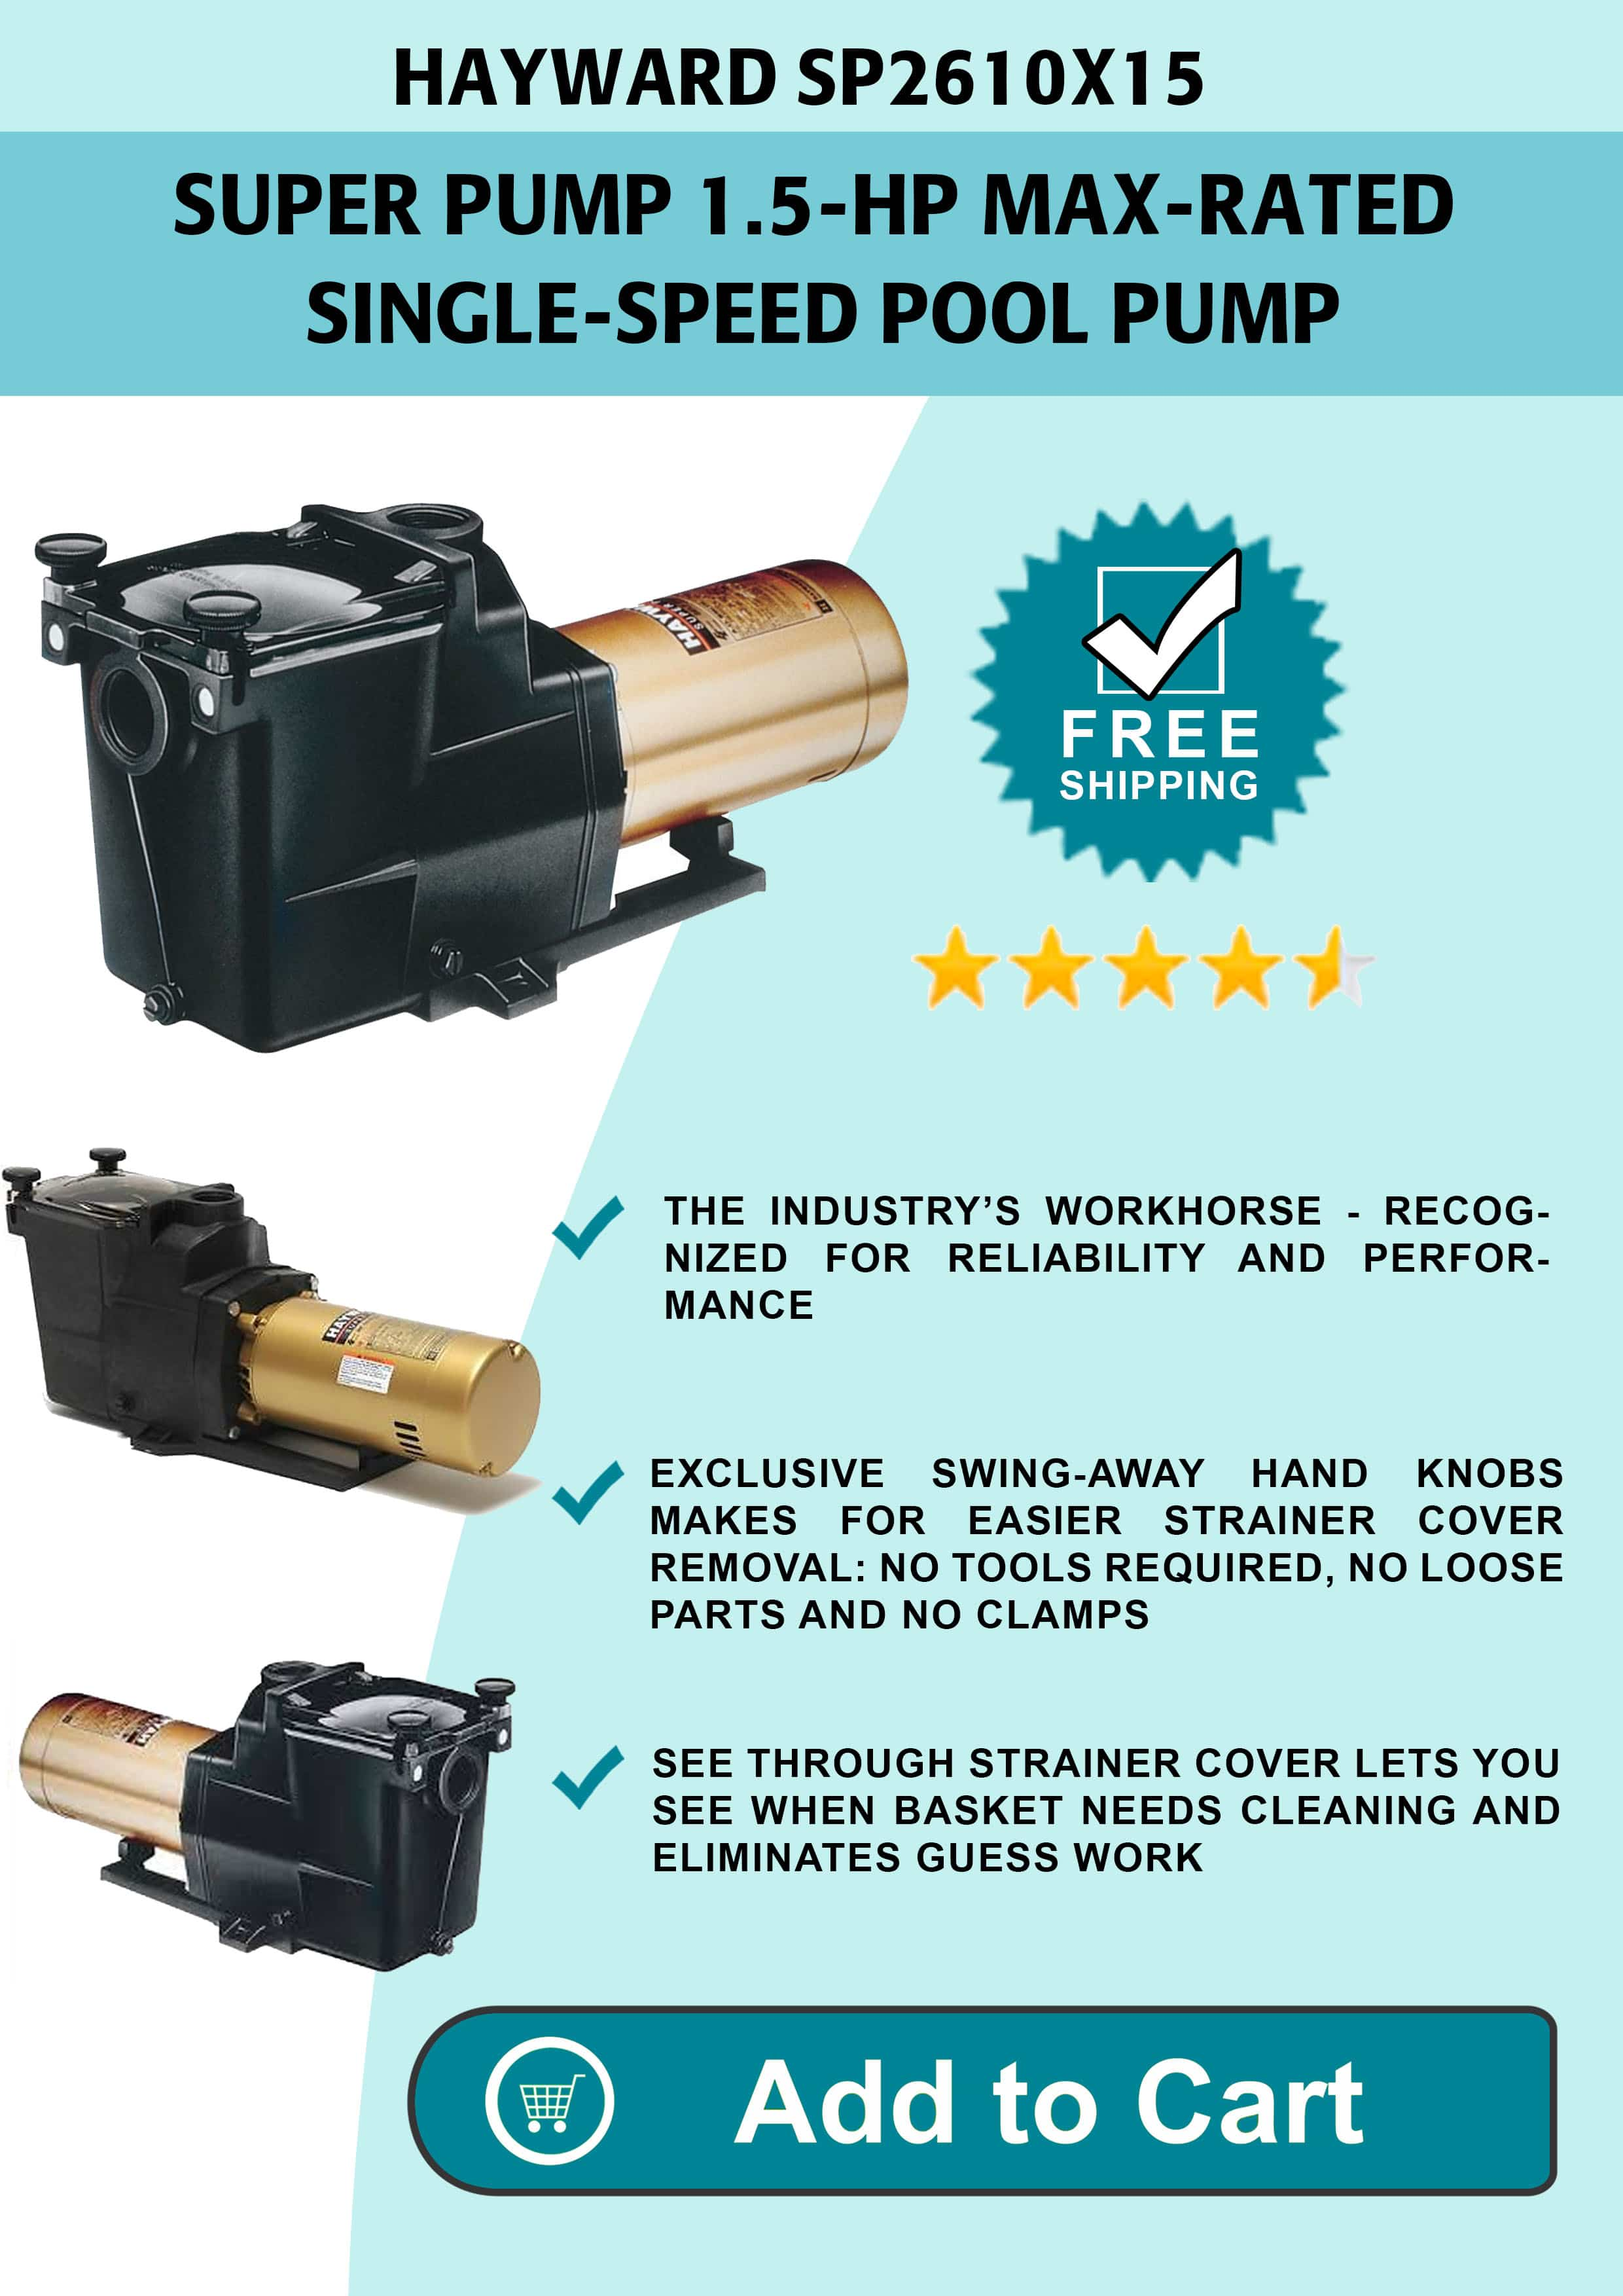 Xtremepowerus Energy Pool Pump Review Maytronics Cleaner Wiring Diagram Swimming